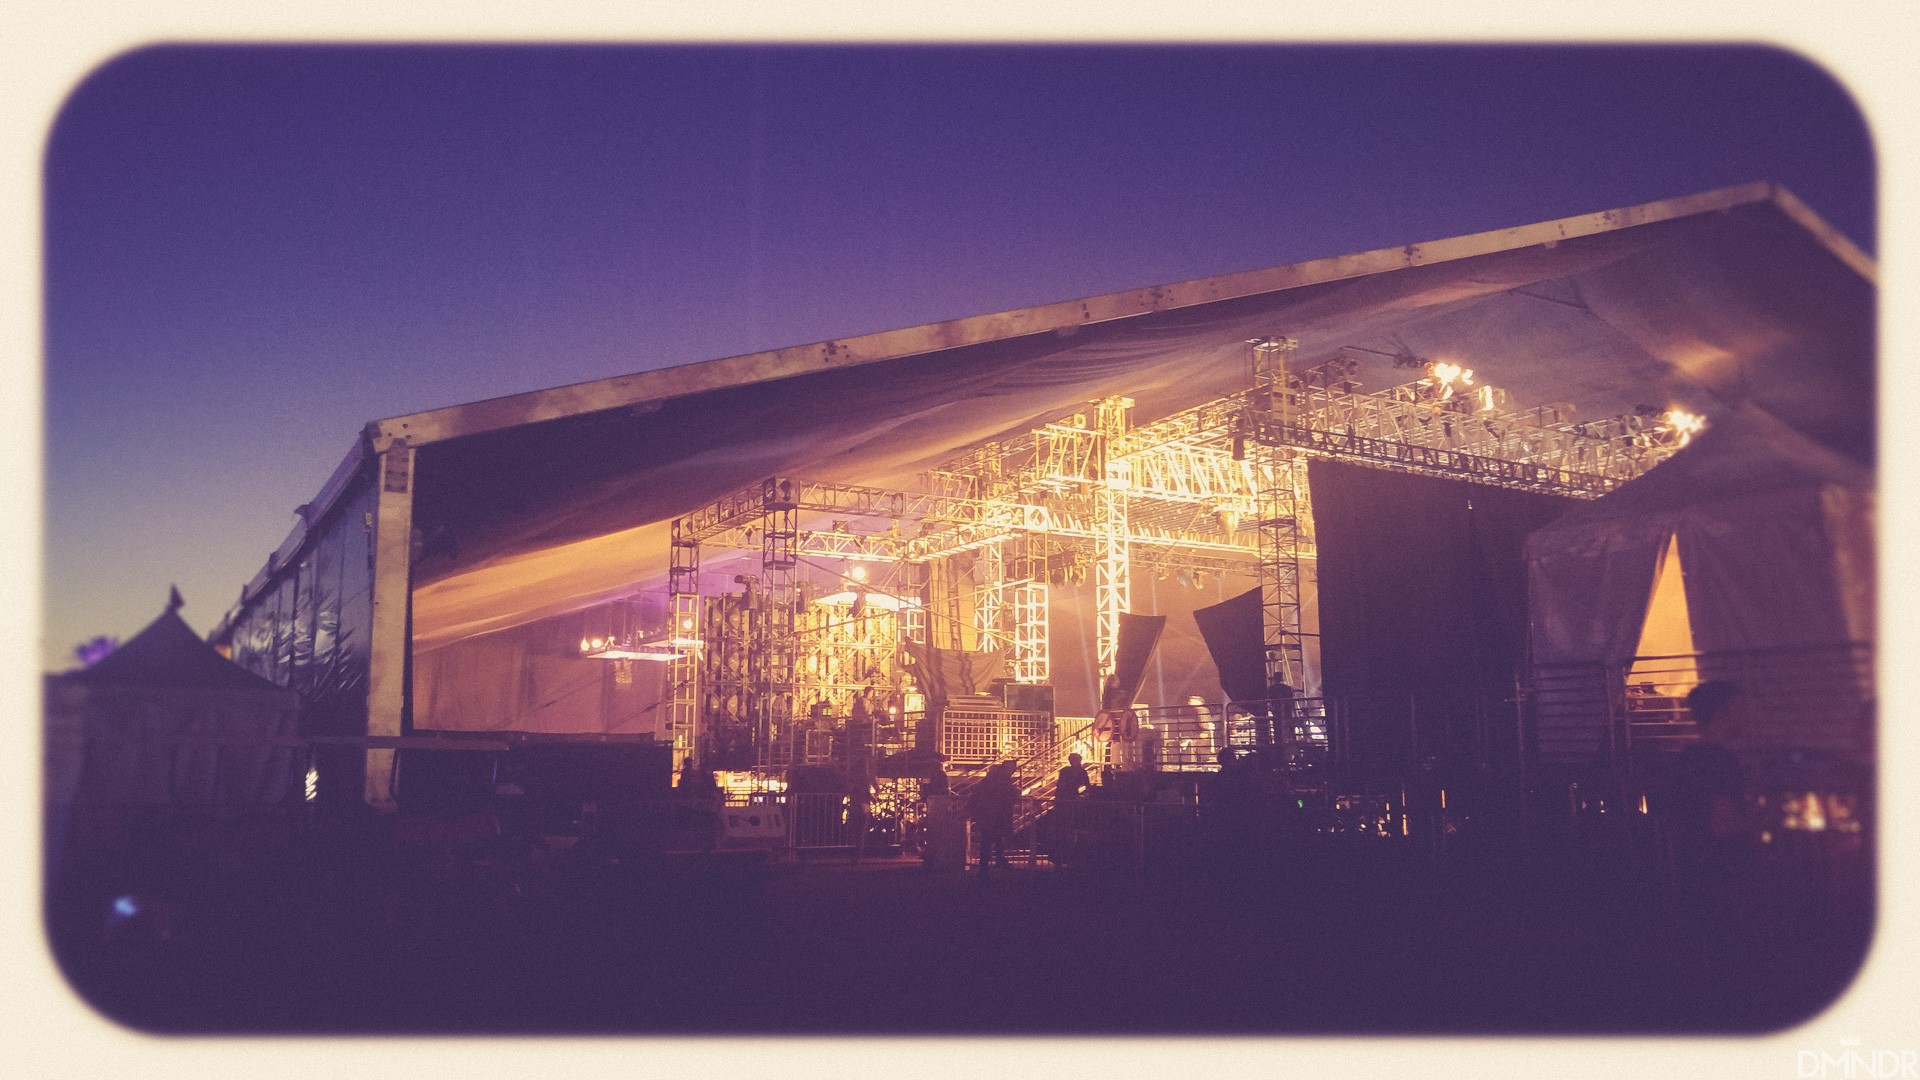 Approaching Mojave Stage prior to performance Coachella Backstage